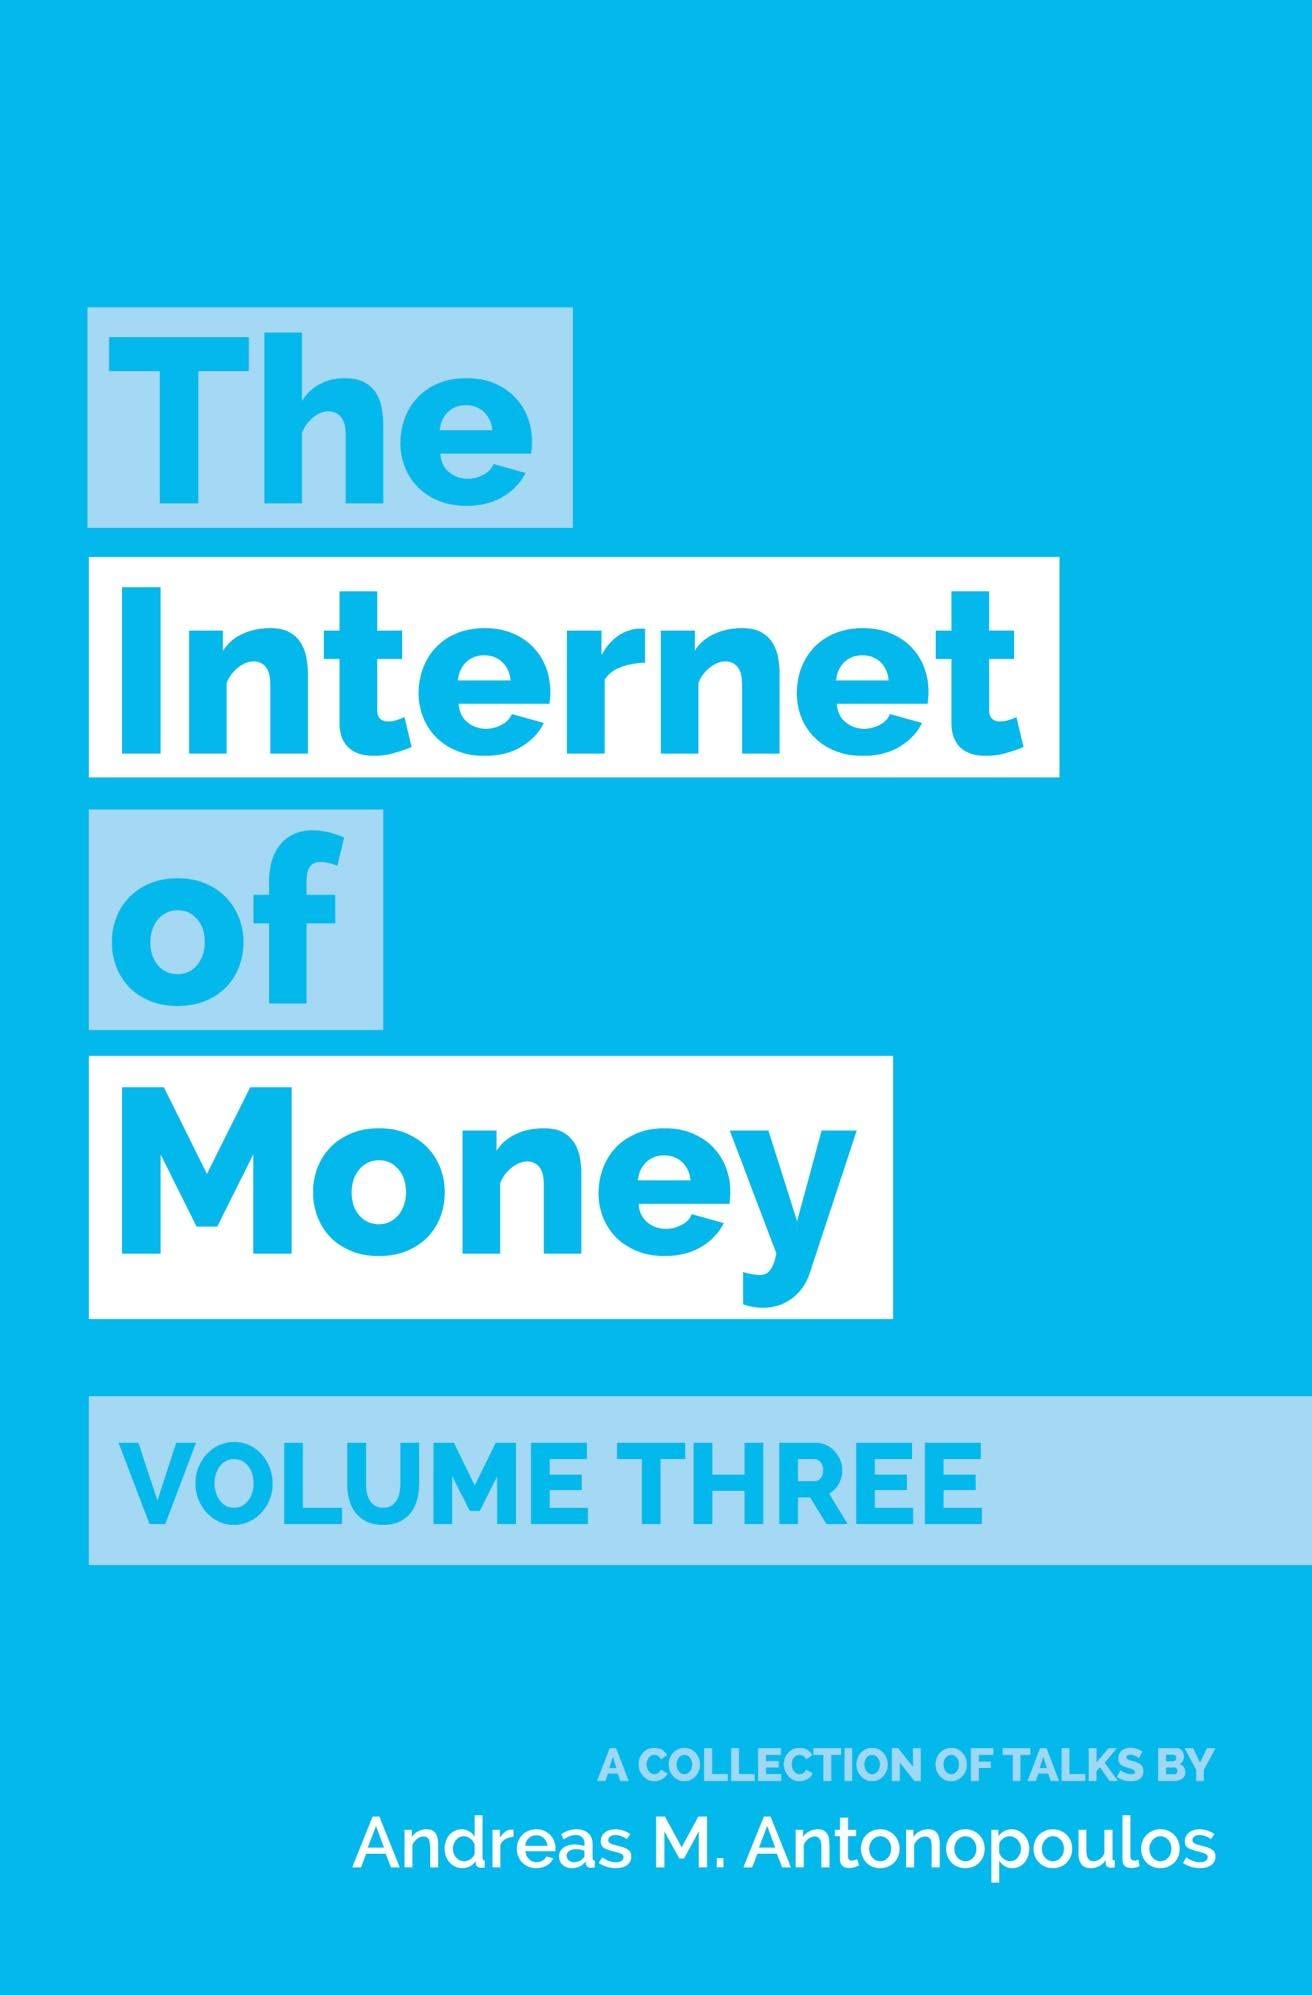 The Internet of Money Volume Three: A collection of talks by Andreas M. Antonopoulos (English Edition)